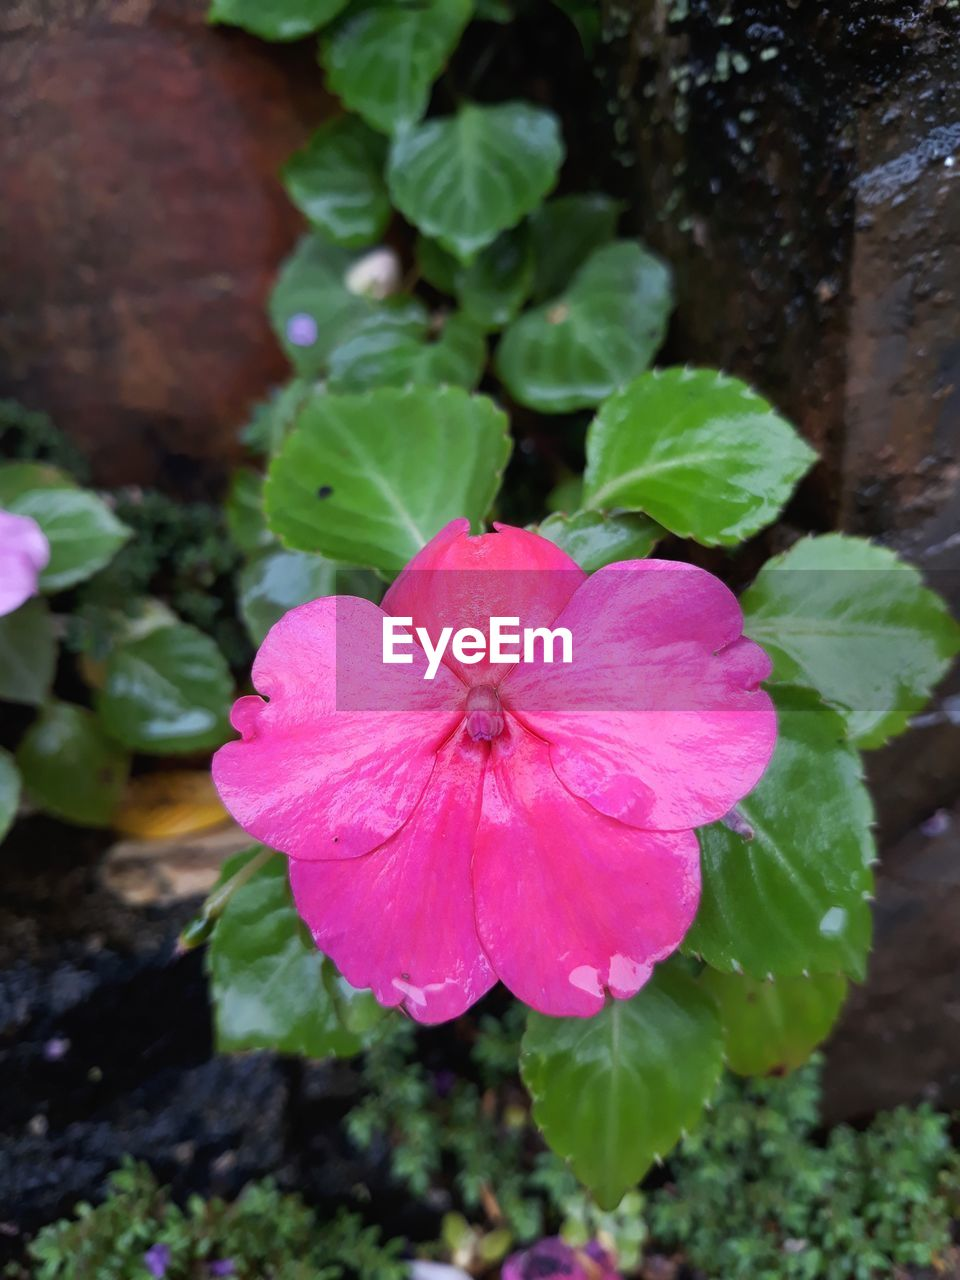 pink color, petal, beauty in nature, day, flower, plant, growth, fragility, periwinkle, flower head, nature, green color, outdoors, no people, freshness, leaf, blooming, close-up, petunia